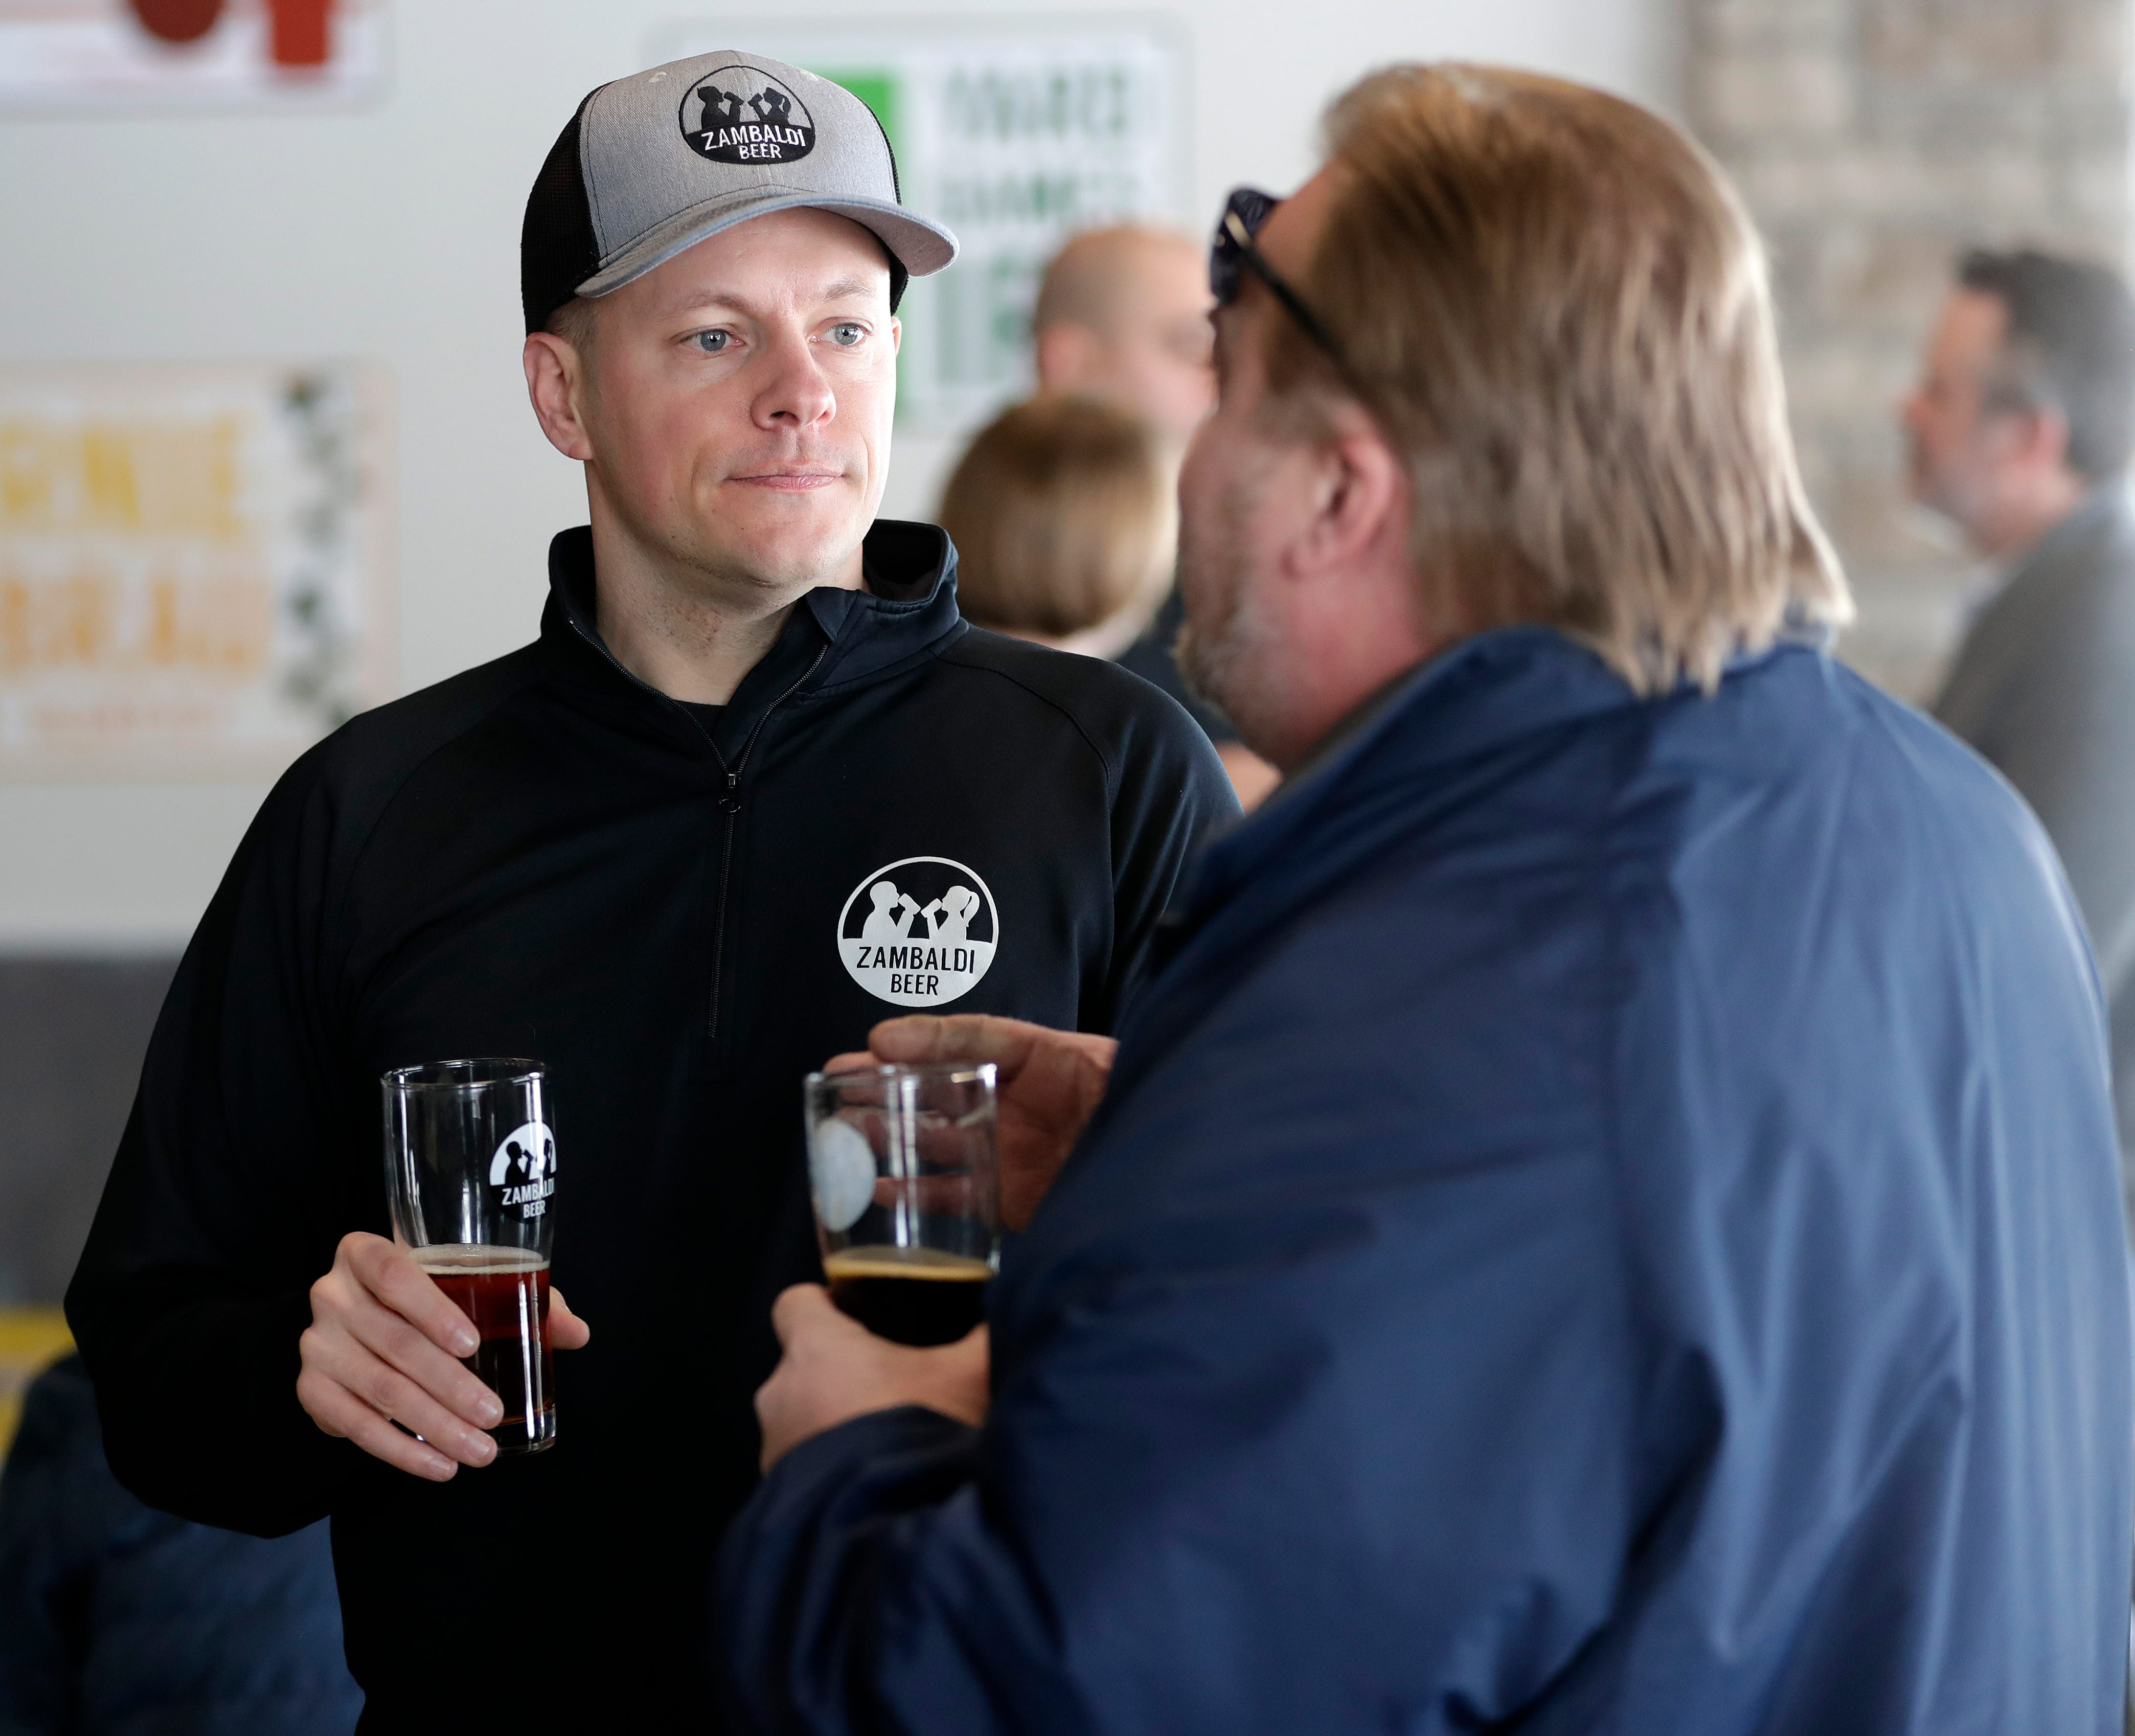 Wade Zander, a Zambaldi Beer founder and co-owner, talks with patrons during the brewery's grand opening in February. The brewery's name is a combination of Zander and Malcolm with baldi as a nod to Wade's and David's bald heads.